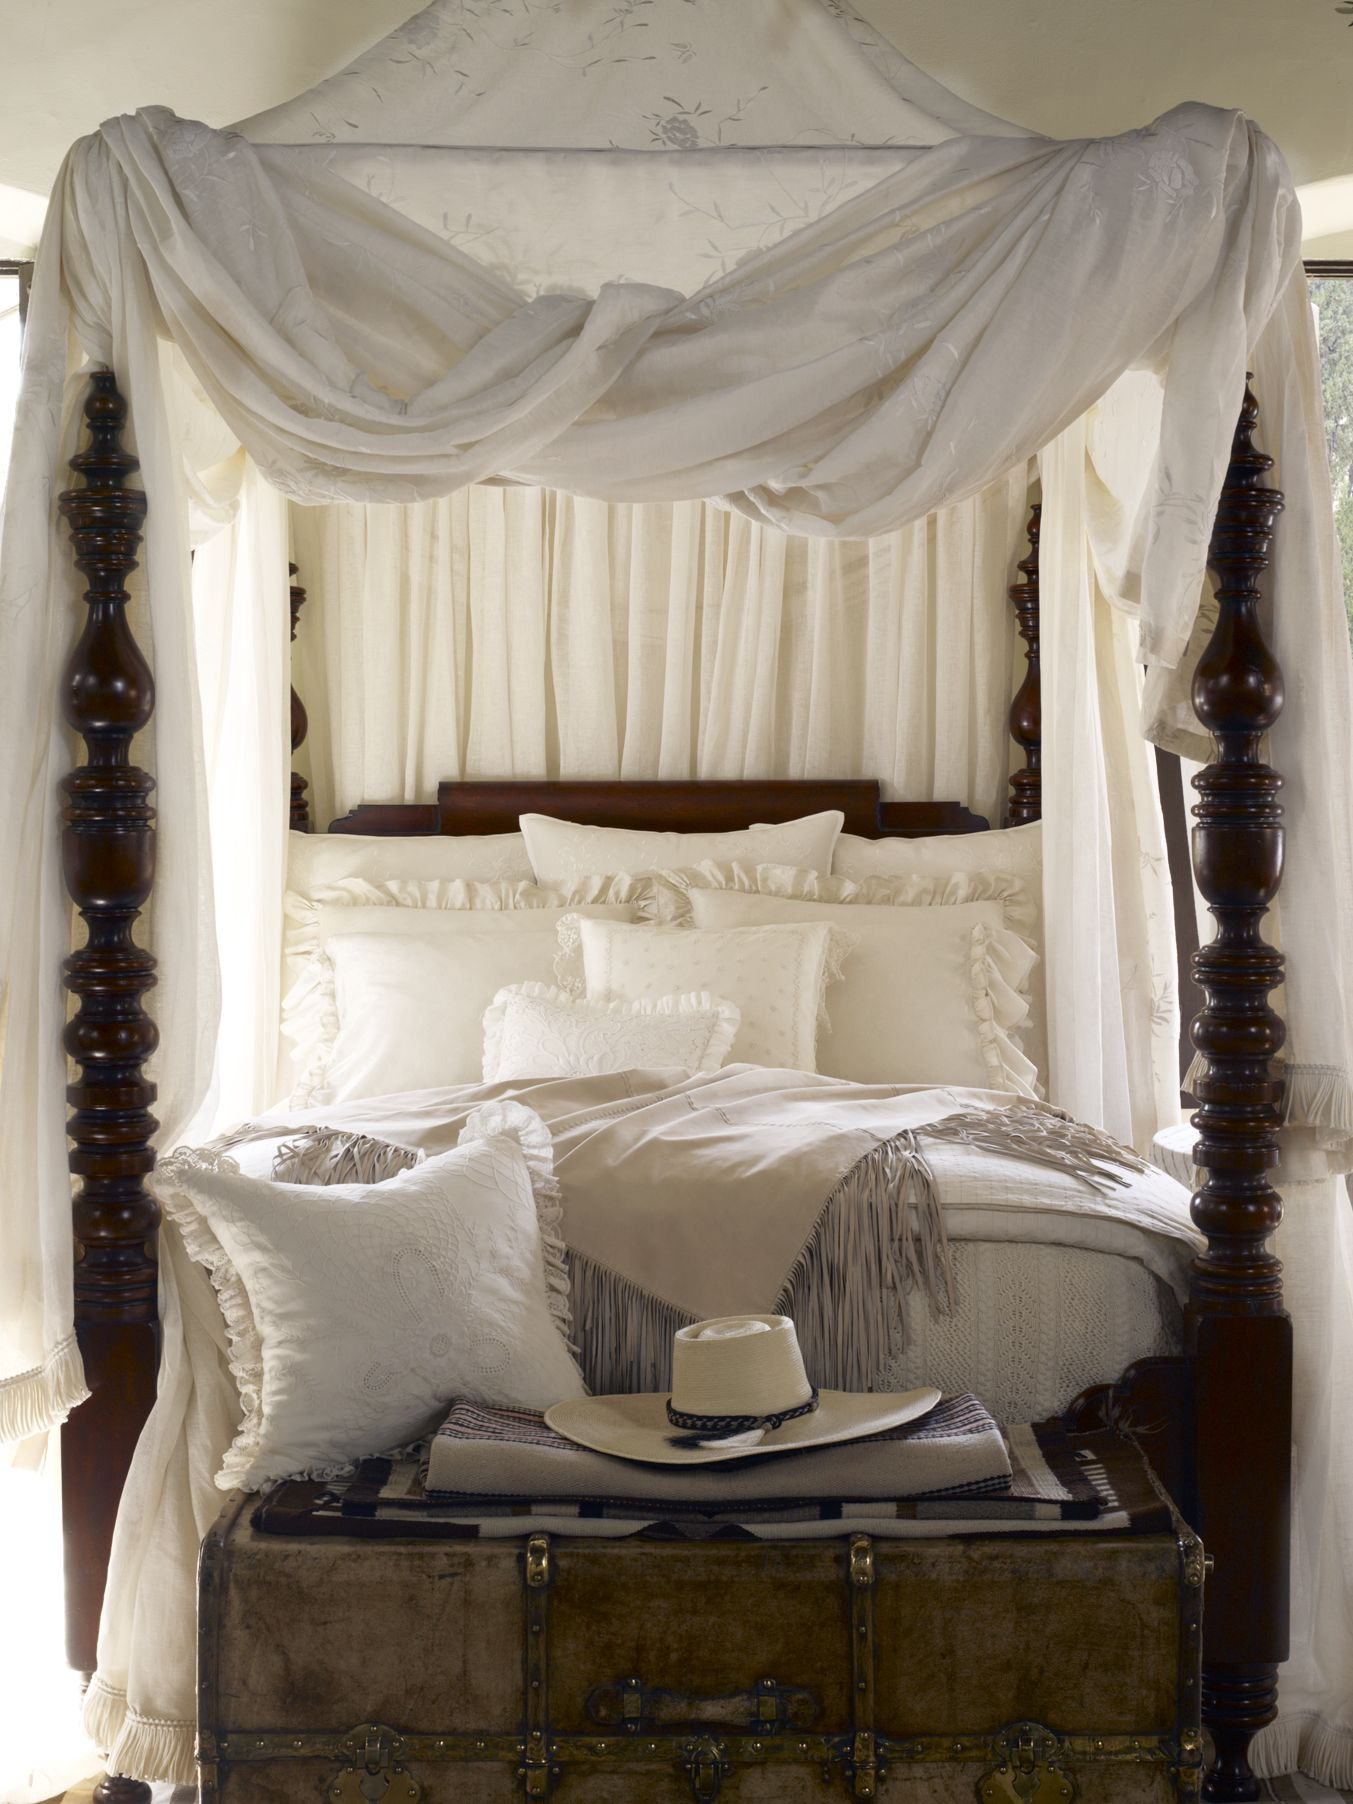 4 Post Canopy Bed Romantic Four Post Canopy Bed From Ralph Lauren Home